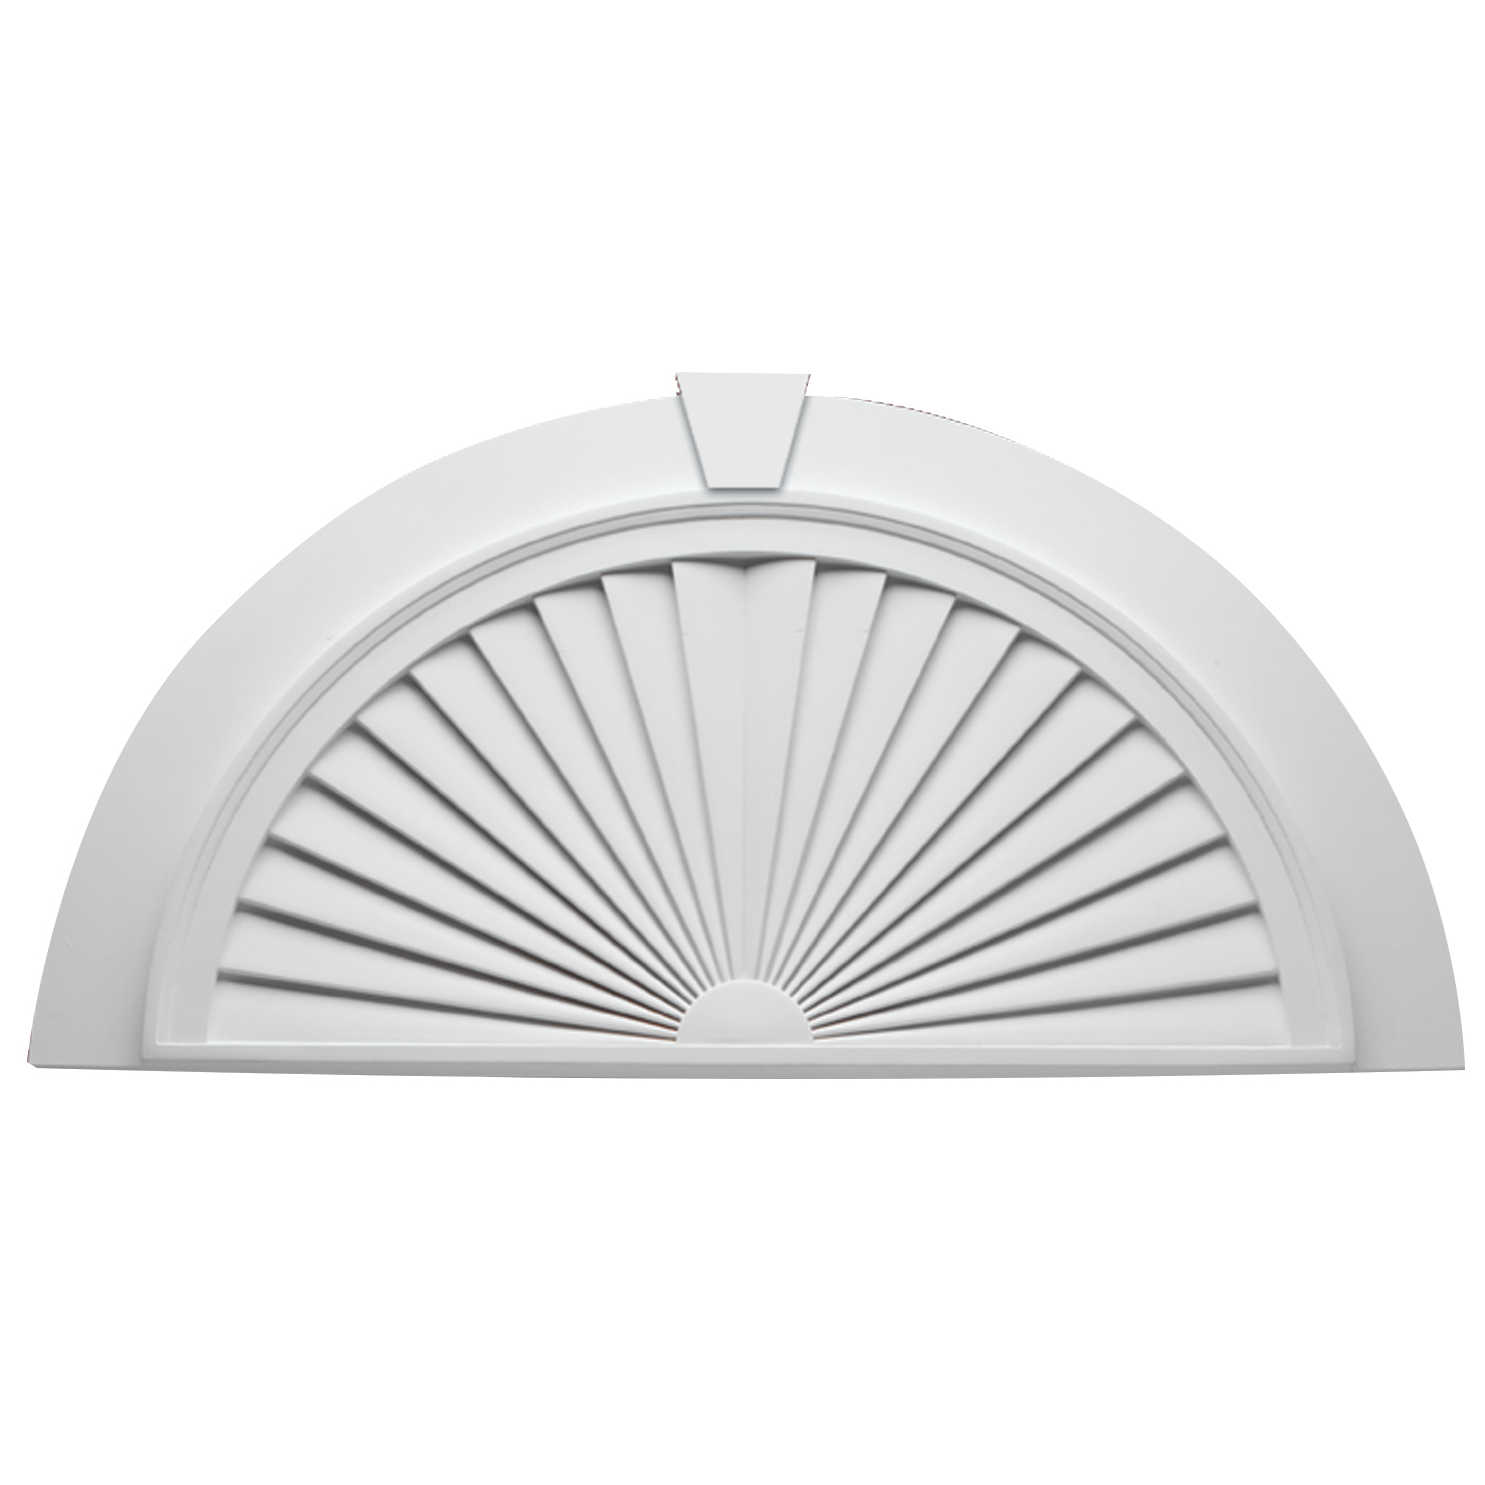 Fypon polyurethane half round sunburst with flat trim and for Fypon window pediments